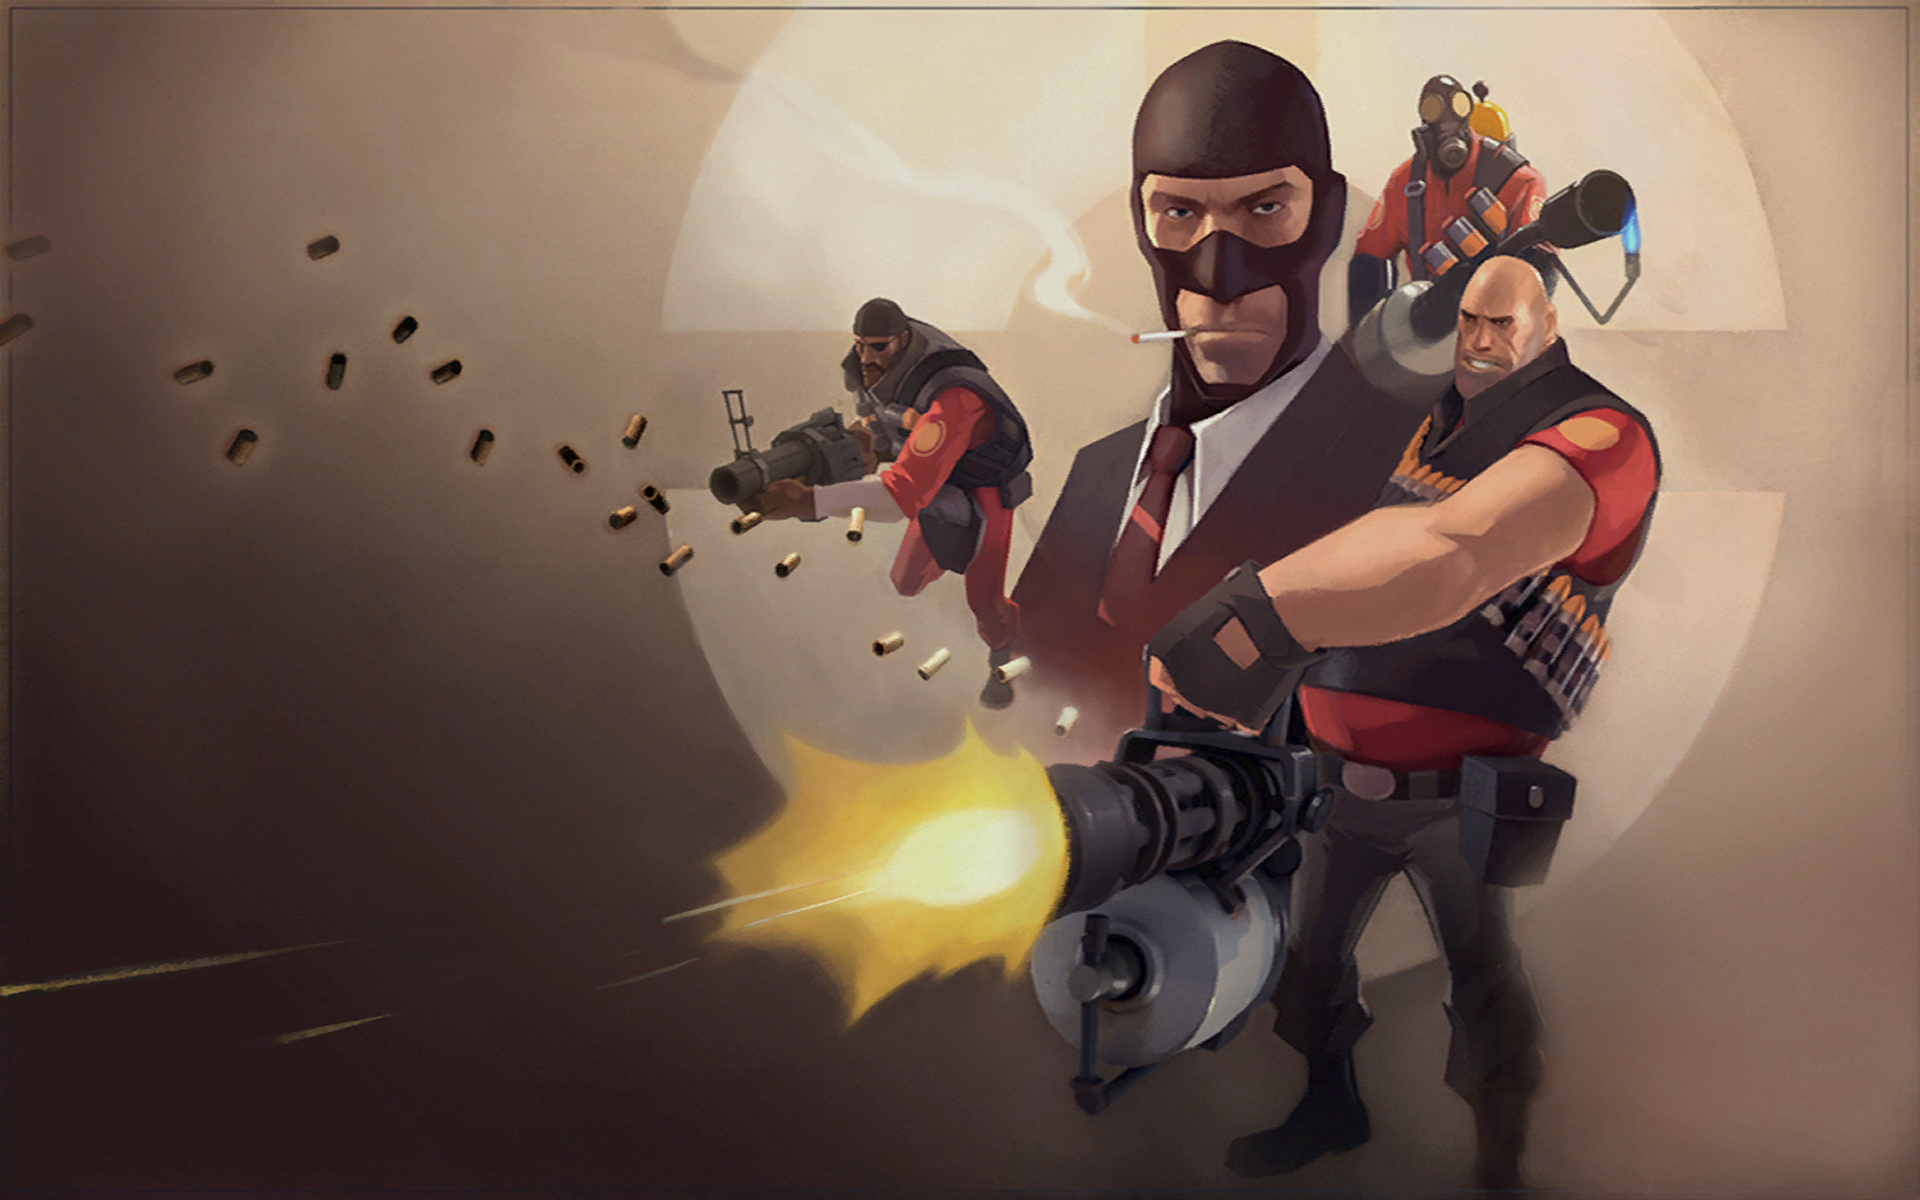 team fortress 2 Wallpaper Background 46743 1920x1200